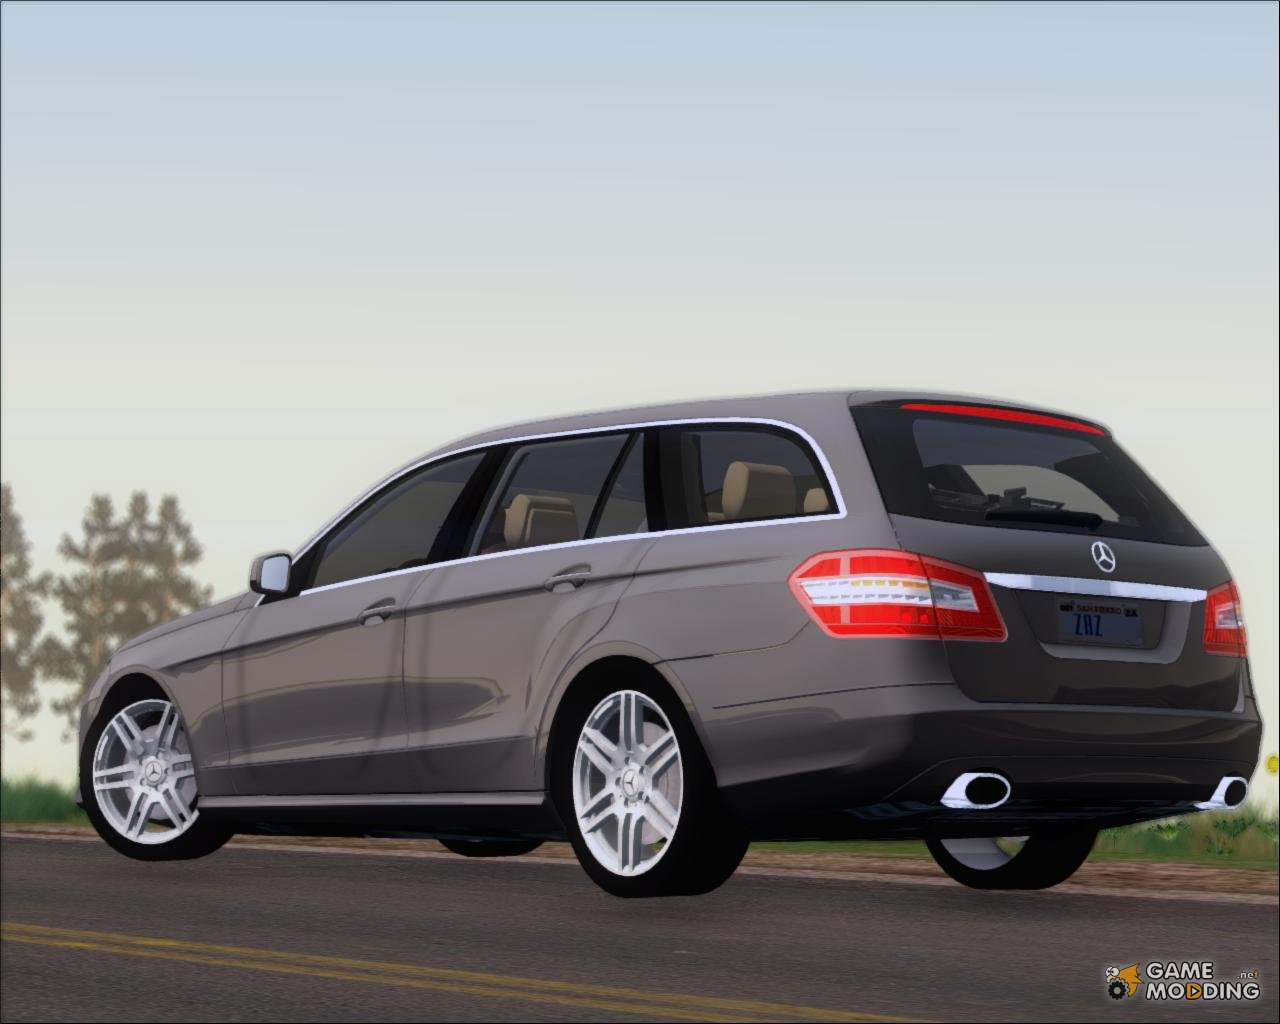 2014 mercedes e250 manual full download autos post for 2013 mercedes benz e350 owners manual pdf